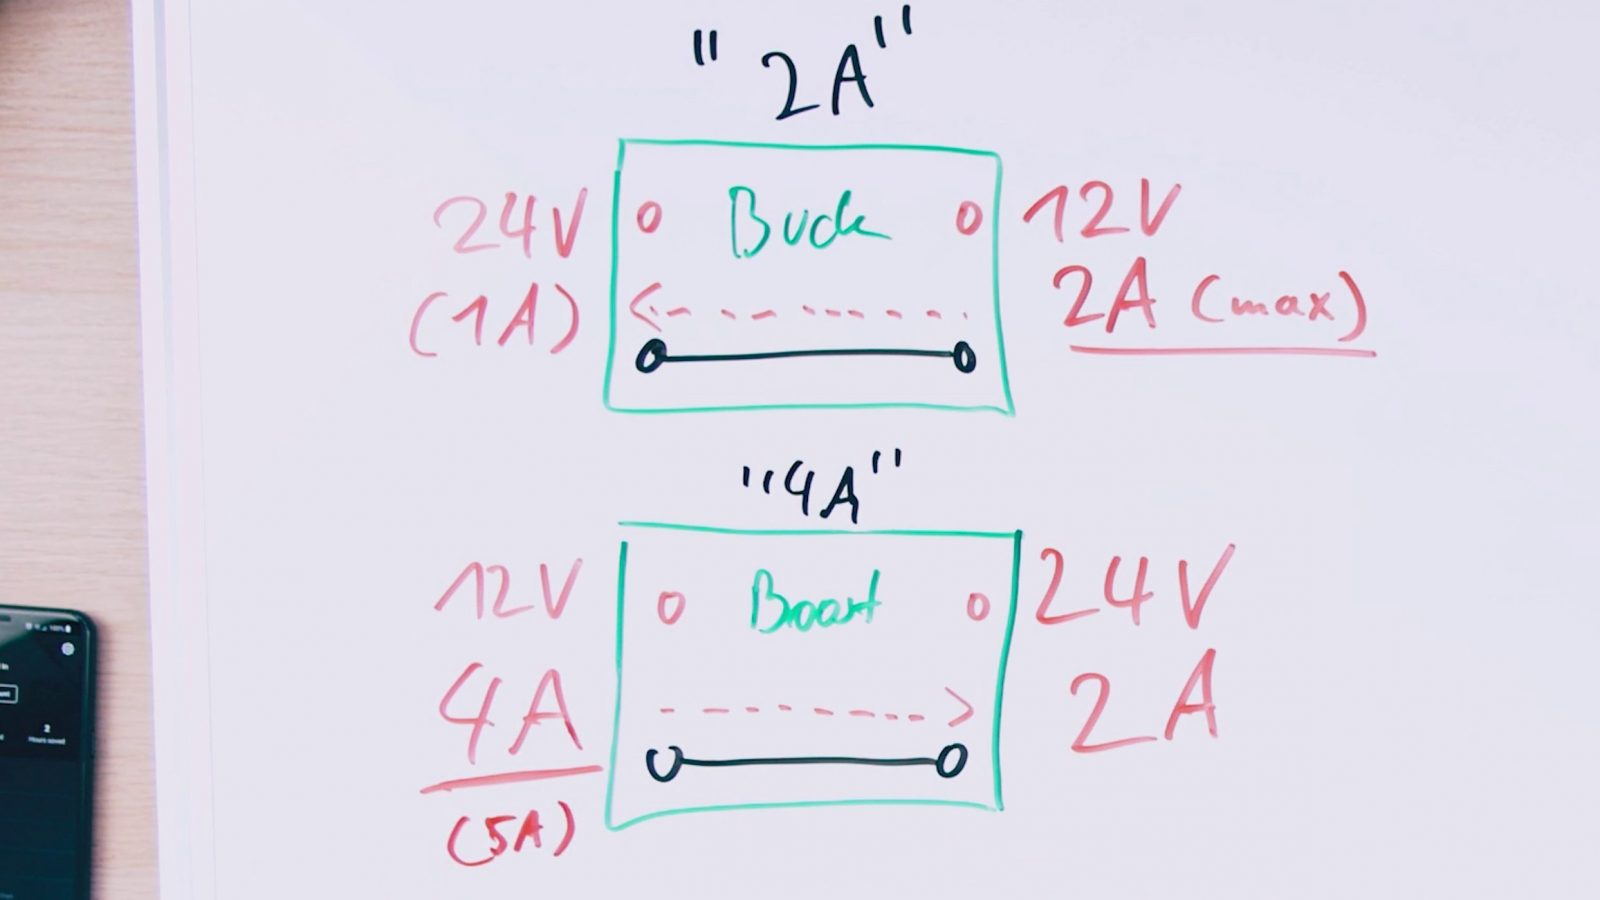 Input/output current and voltage relations in DC-DC regulators. A buck converter supplying 12V 2A will draw 1A at its 24V input, while a a boost converter supplying 24V 2A will draw 4A at its 12V input.